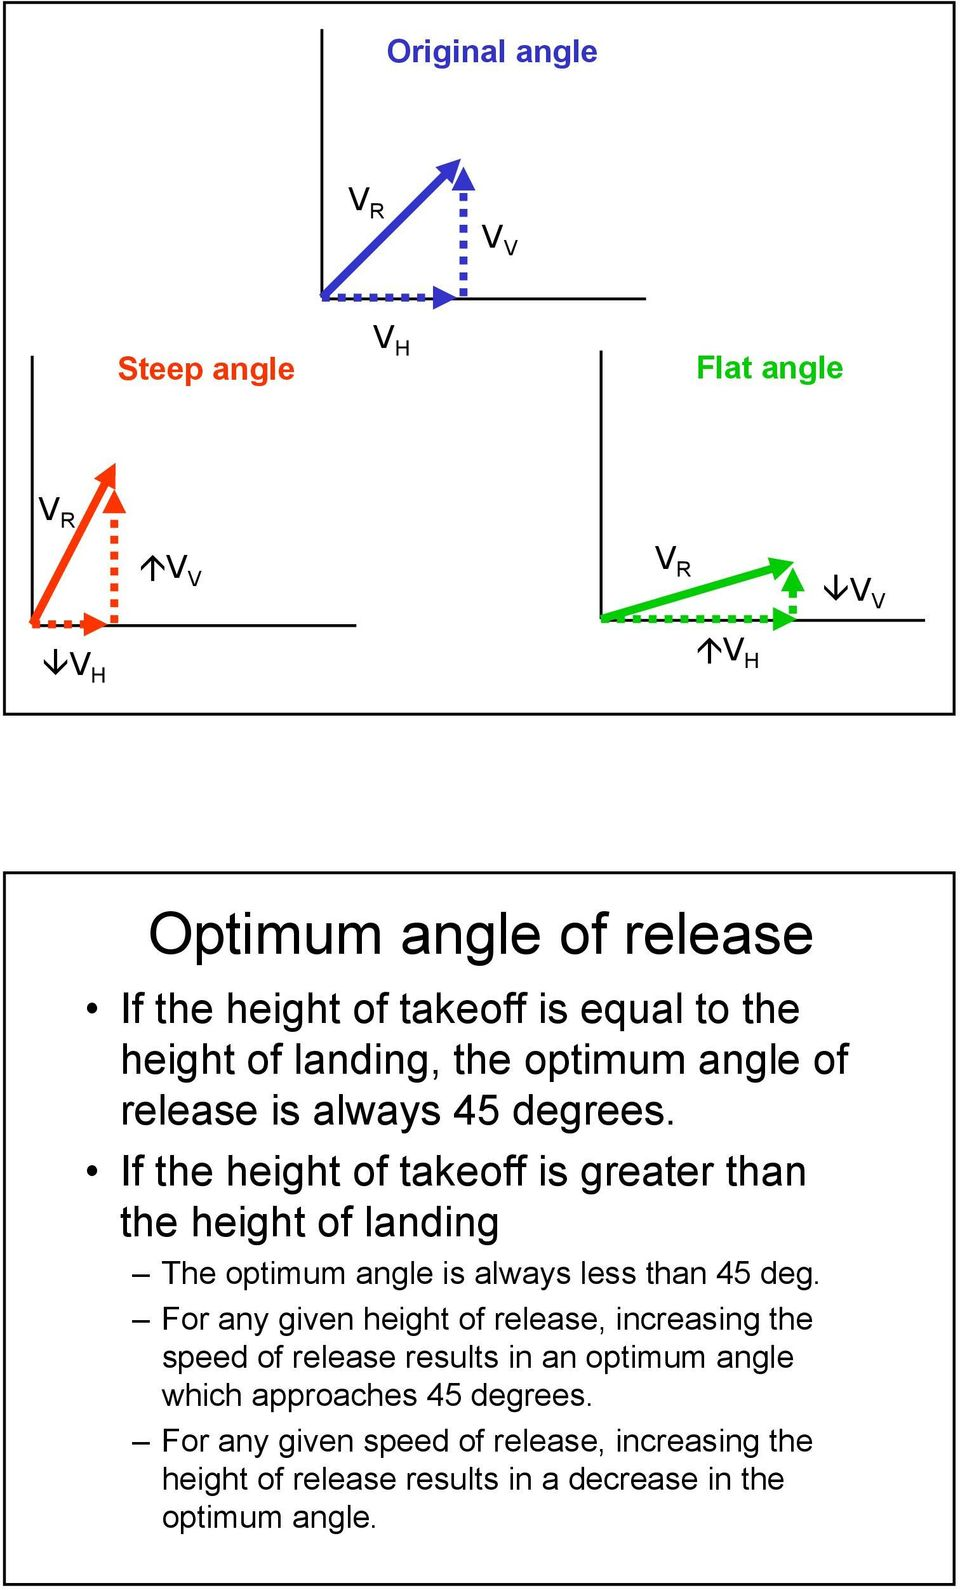 If the height of takeoff is greater than the height of landing The optimum angle is always less than 45 deg.